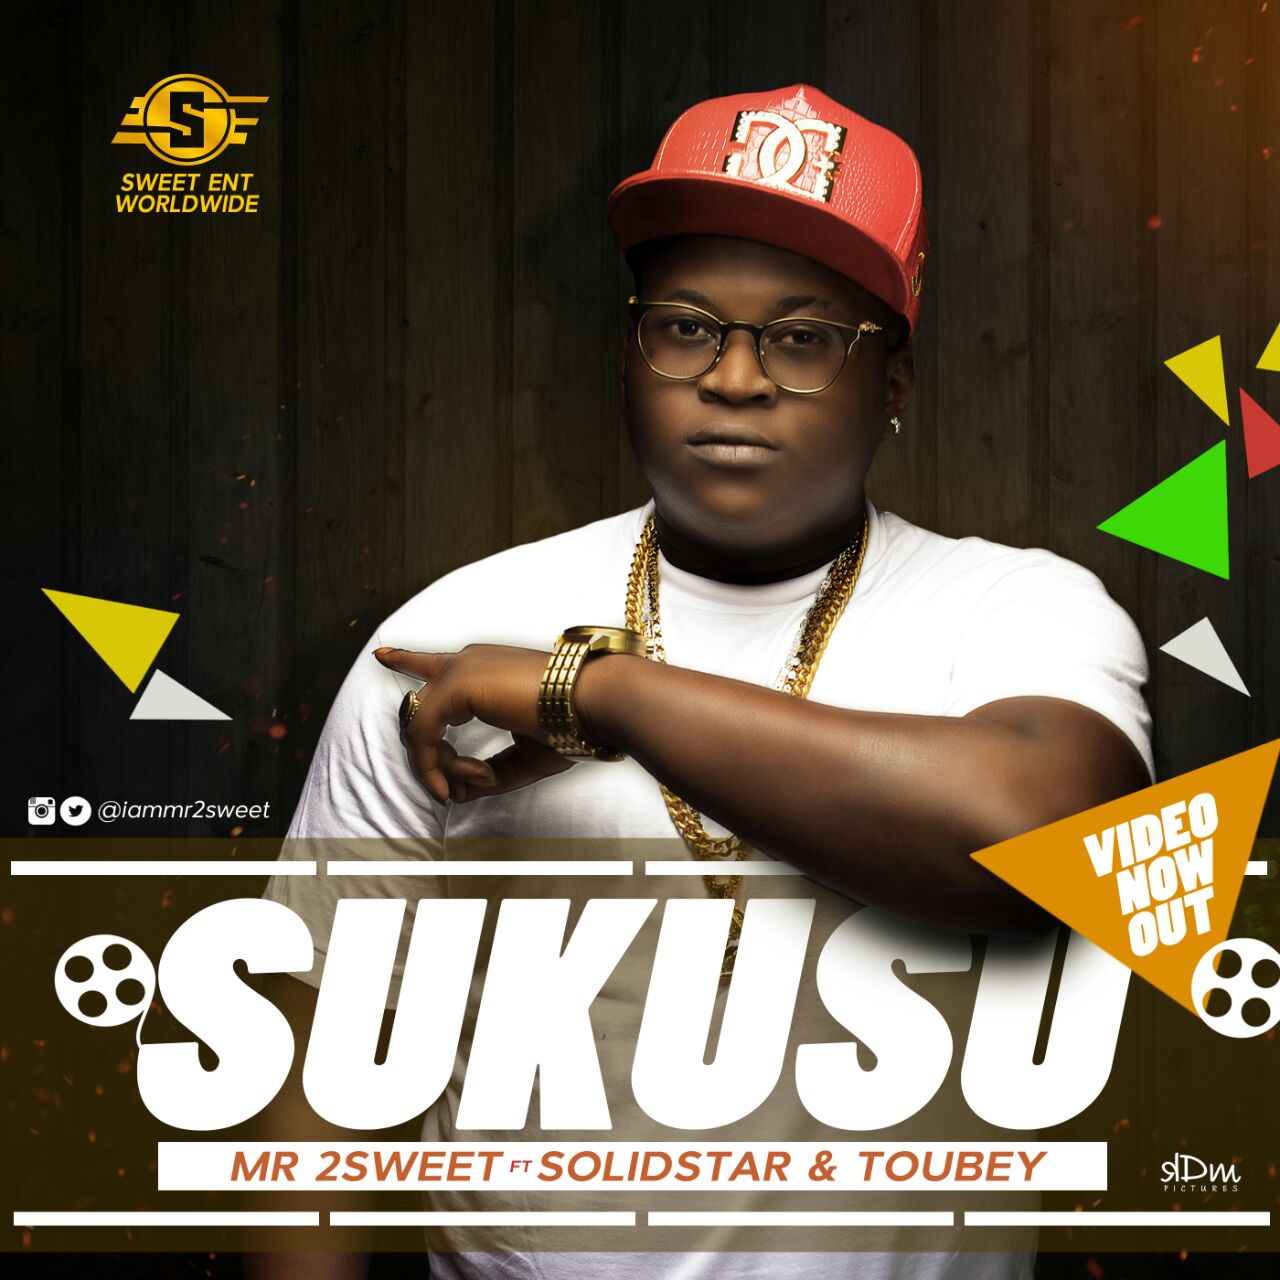 VIDEO: Mr 2Sweet - Sukusu ft. Solid Star & Toubey